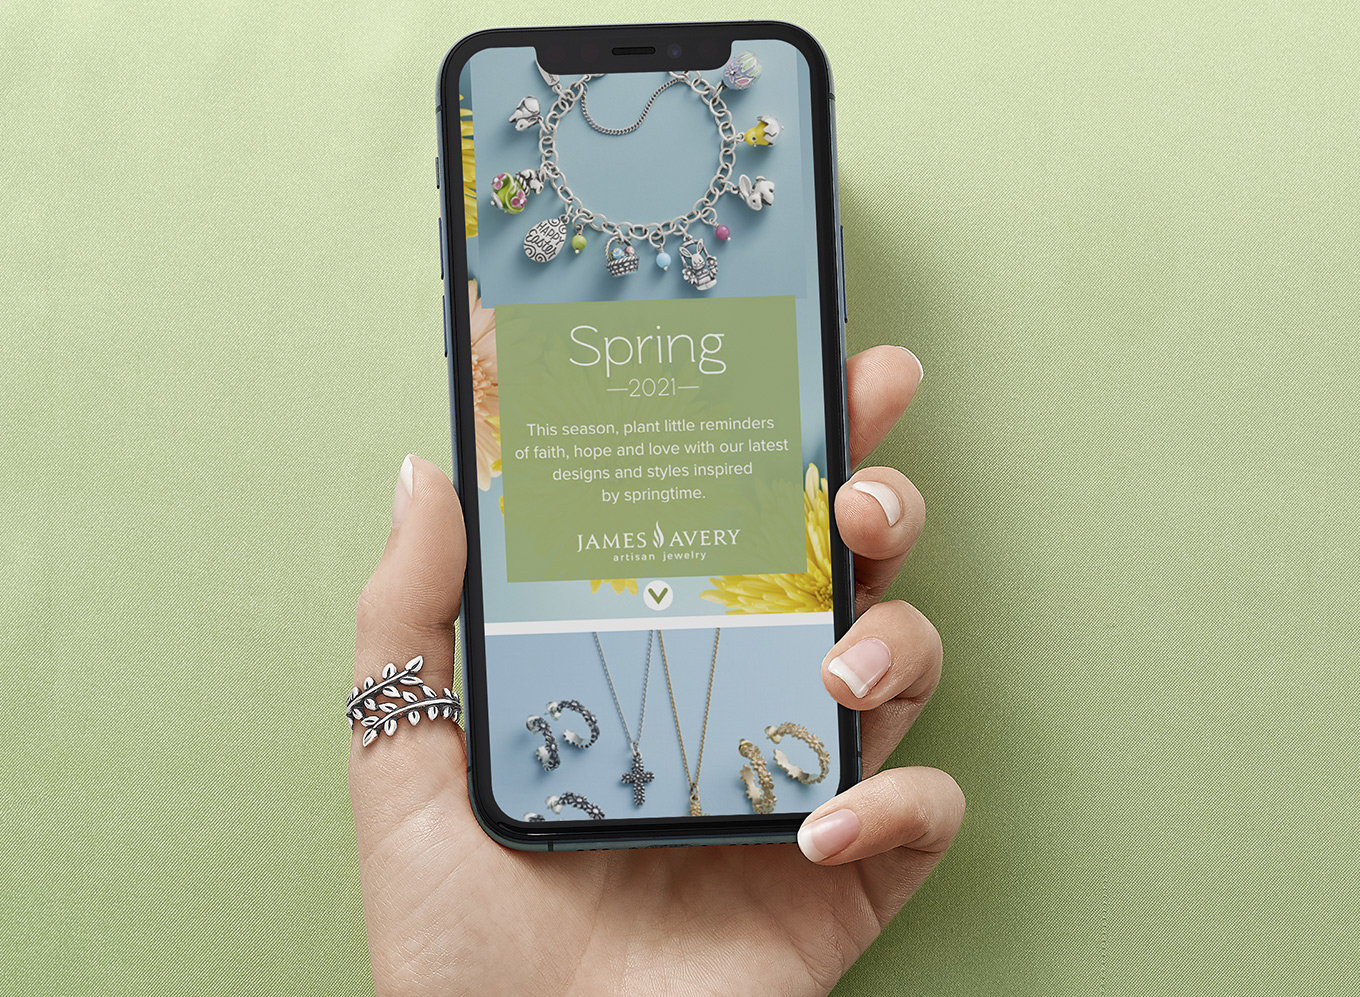 A hand holding a smartphone with an image of the new lookbook, featuring an assortment of designs for spring.